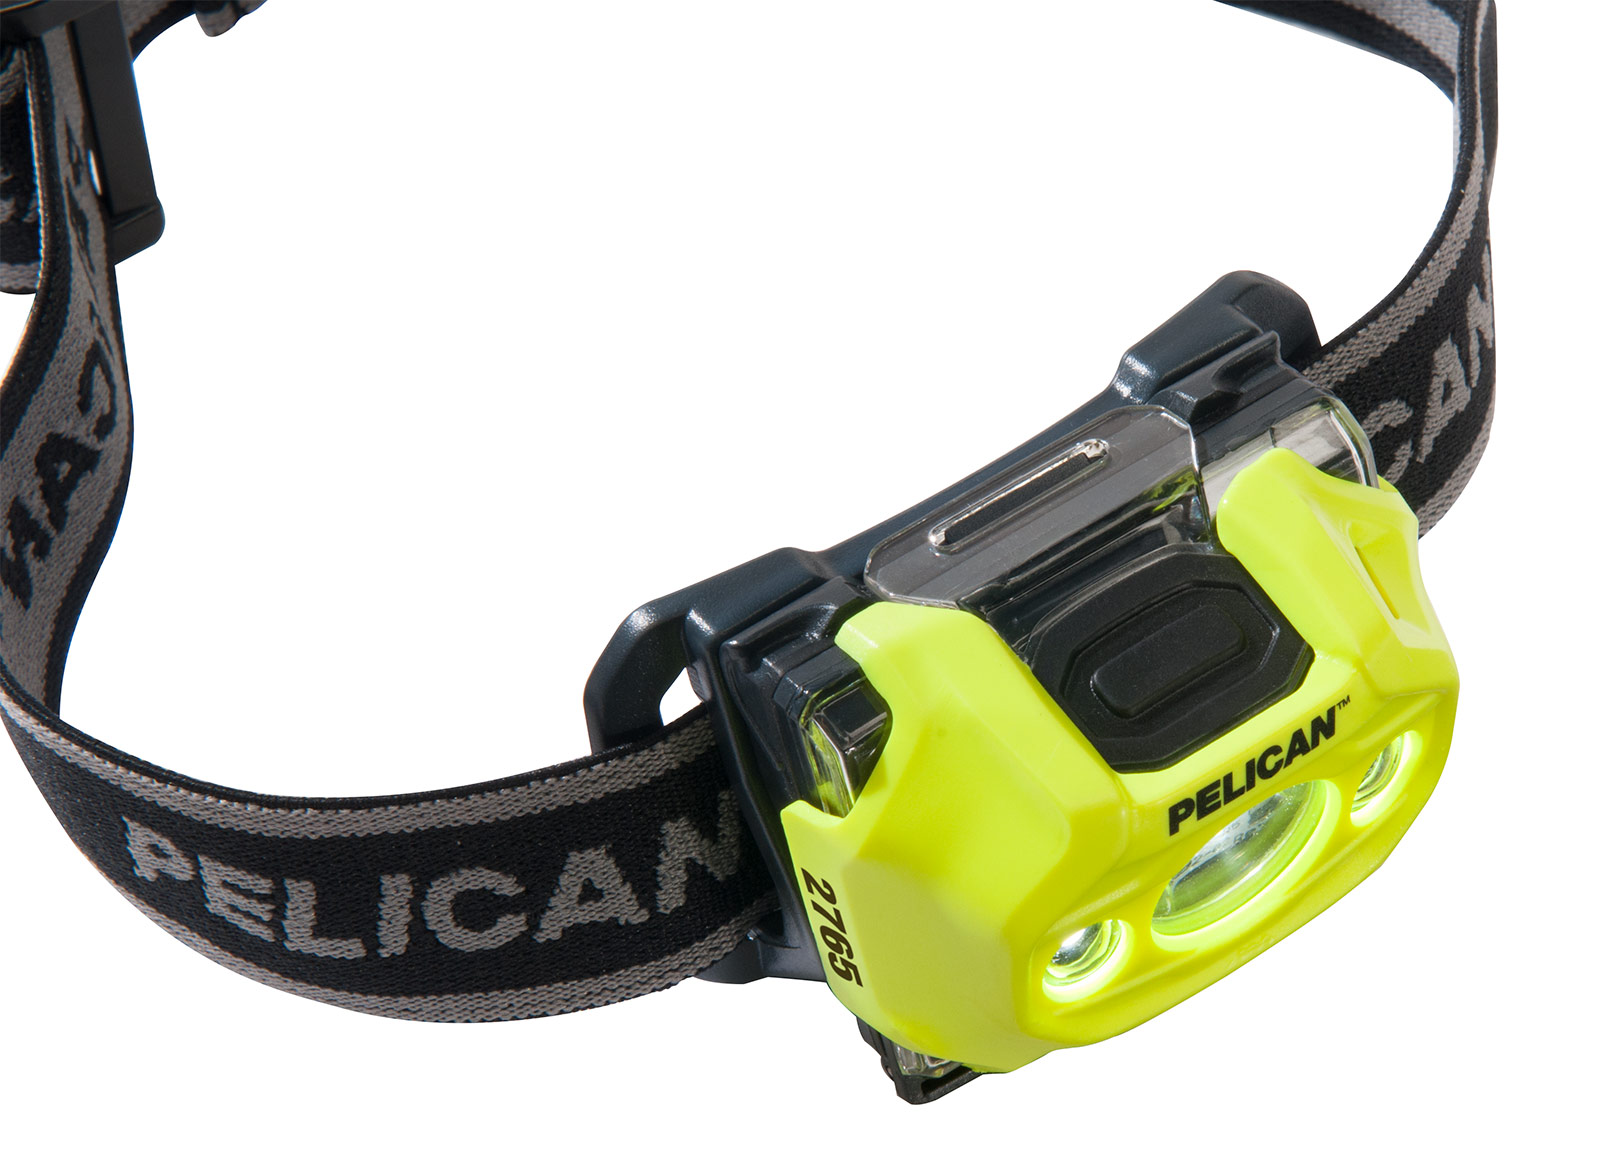 pelican 2765 hands free tough headlamp